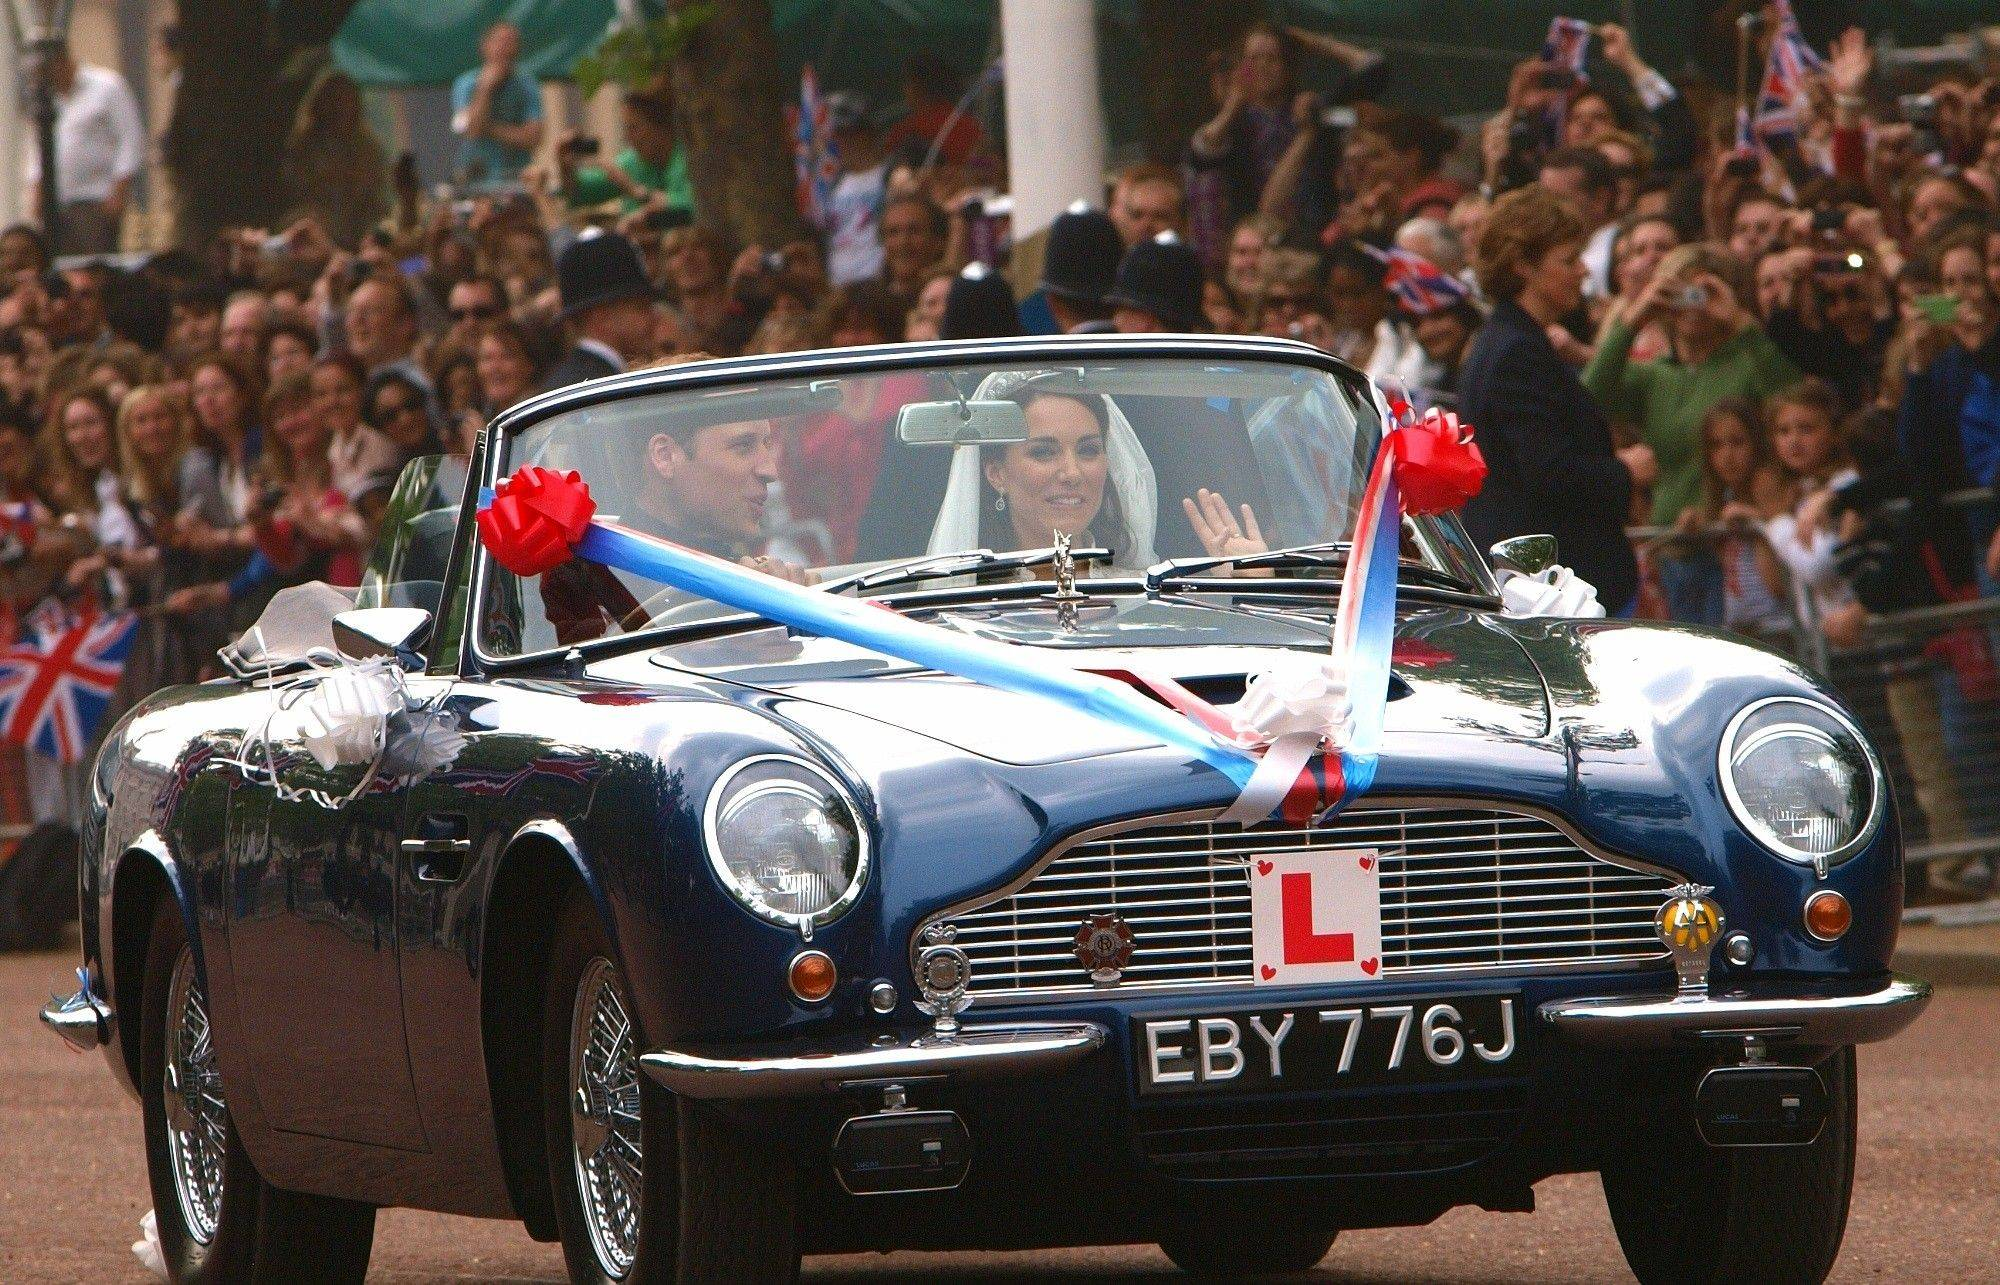 Britain's Prince William drives his wife, Kate, Duchess of Cambridge on The Mall in London in his father Prince Charles' Aston Martin Volante sports car covered with bunting on their way to Clarence House after their wedding in nearby Westminster Abbey, in London Friday April 29, 2011.